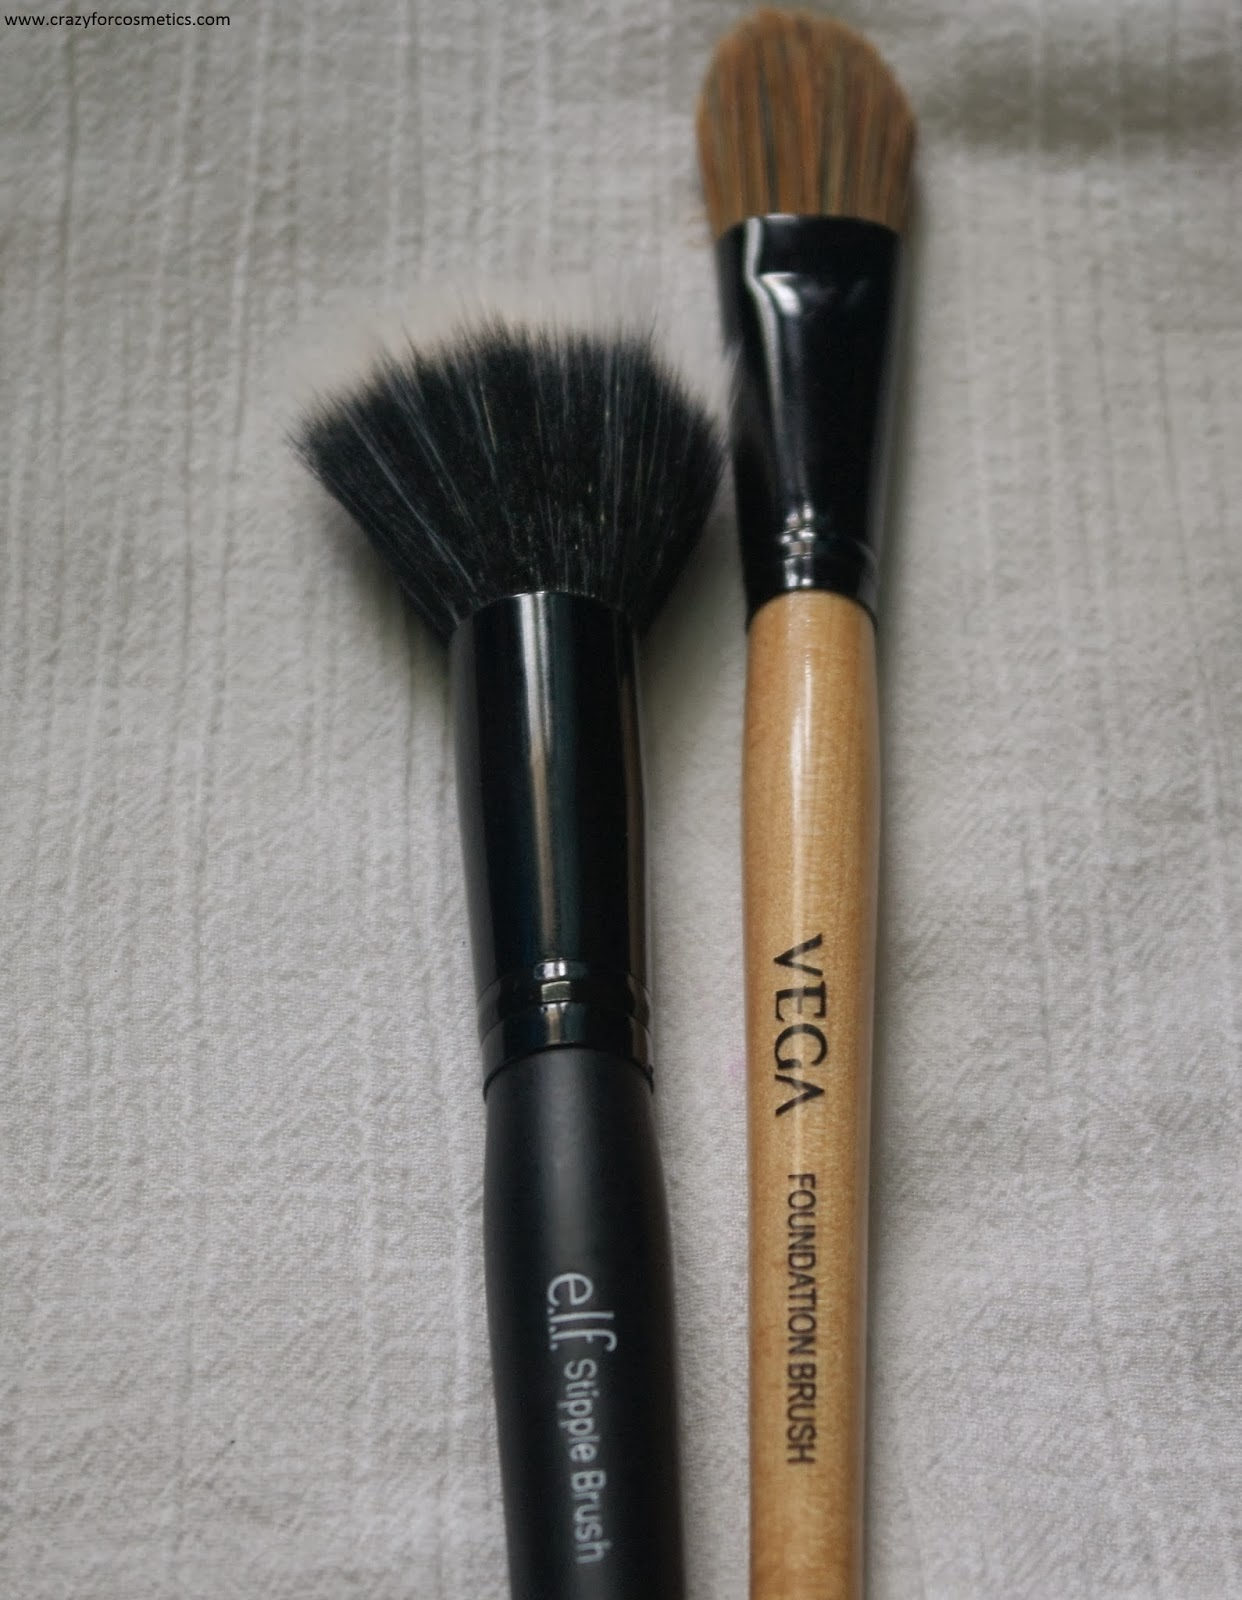 types of foundation brushes- foundation brush online- foundation brush review